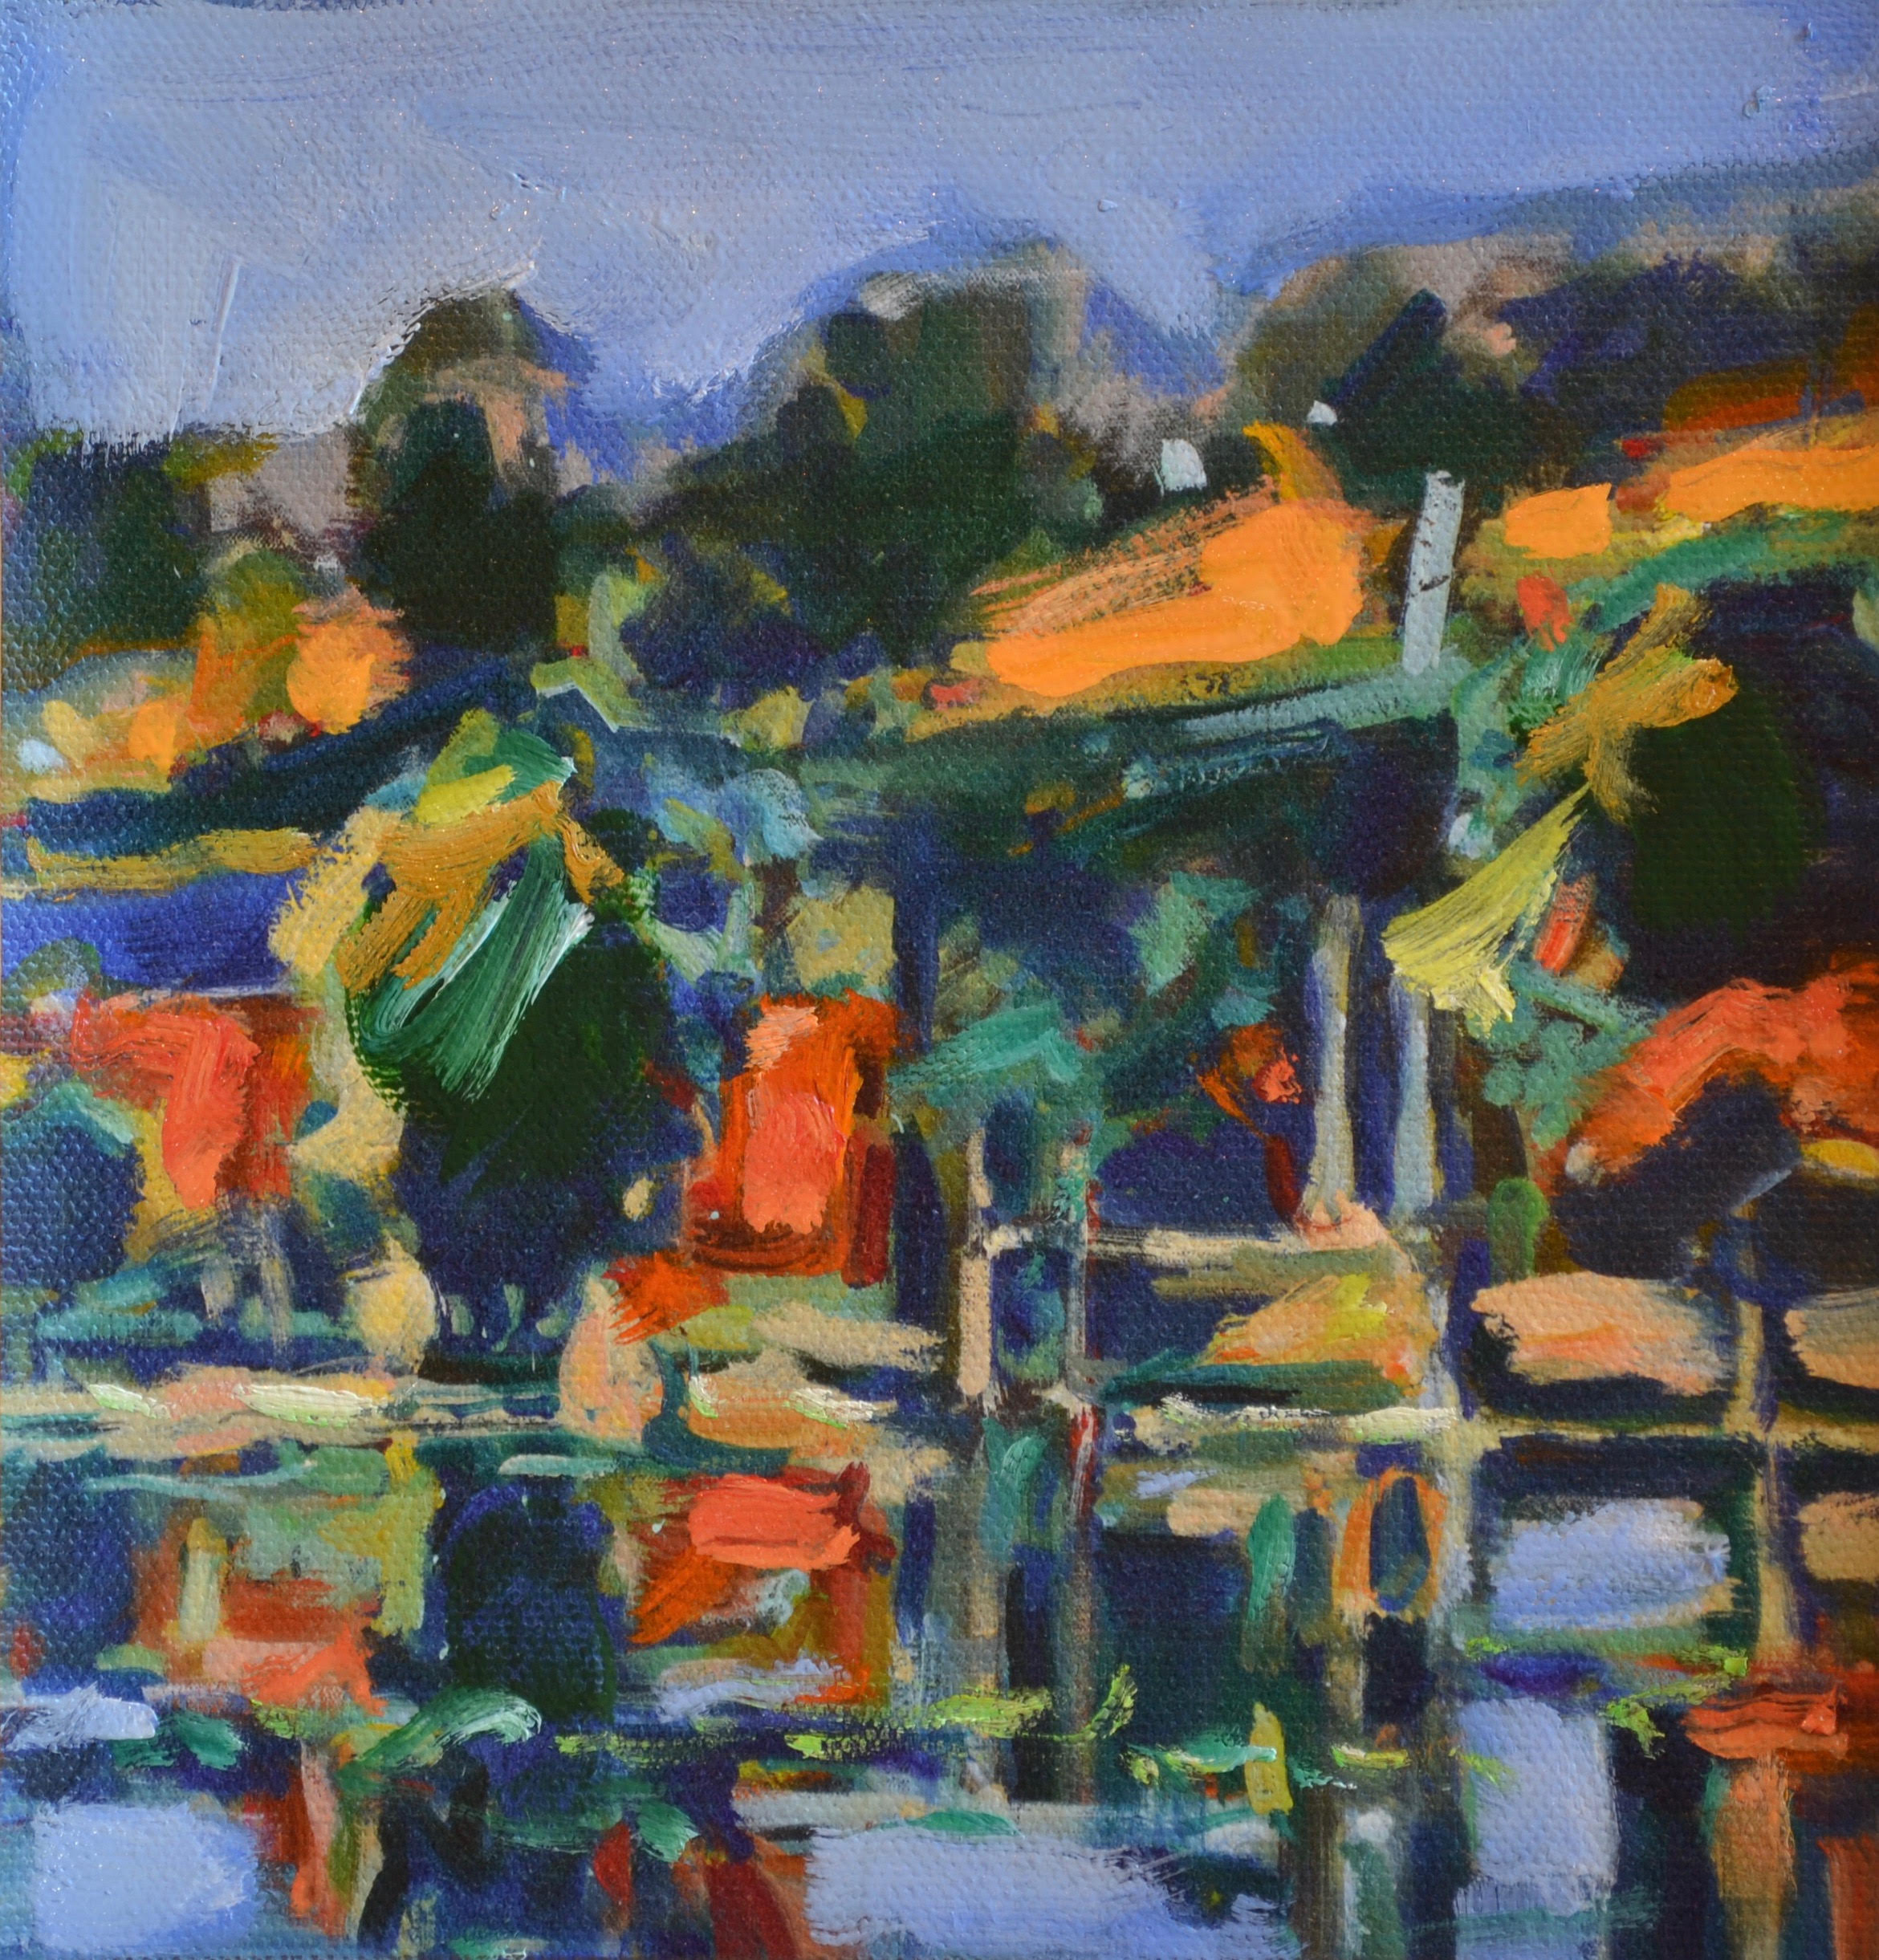 "Pat Mahony - Miller Pond 2 - 2020 - Hand Augmented Giclee on Canvas - 6"" x 6"""